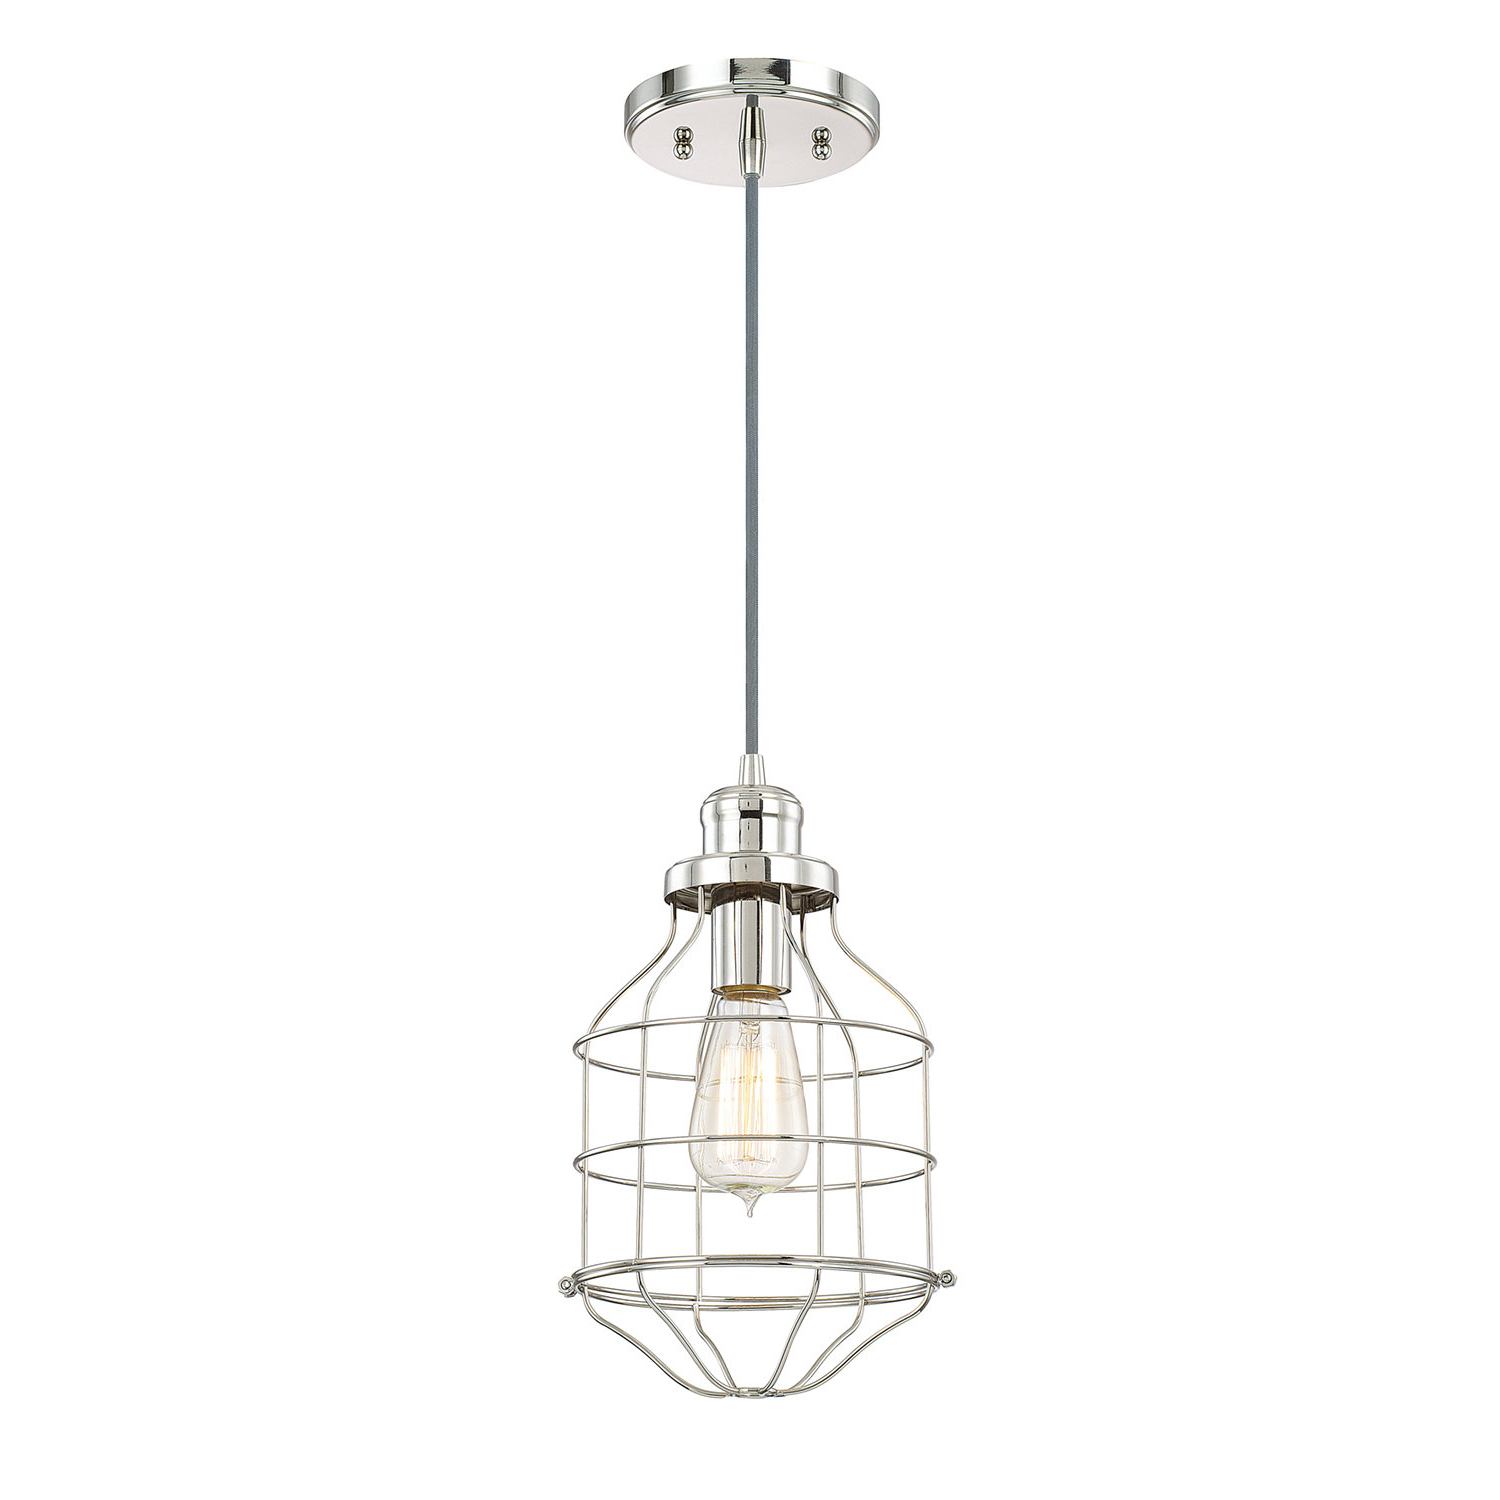 Barrons 1 Light Single Cylinder Pendants Throughout Most Up To Date Au Pendant (View 6 of 20)